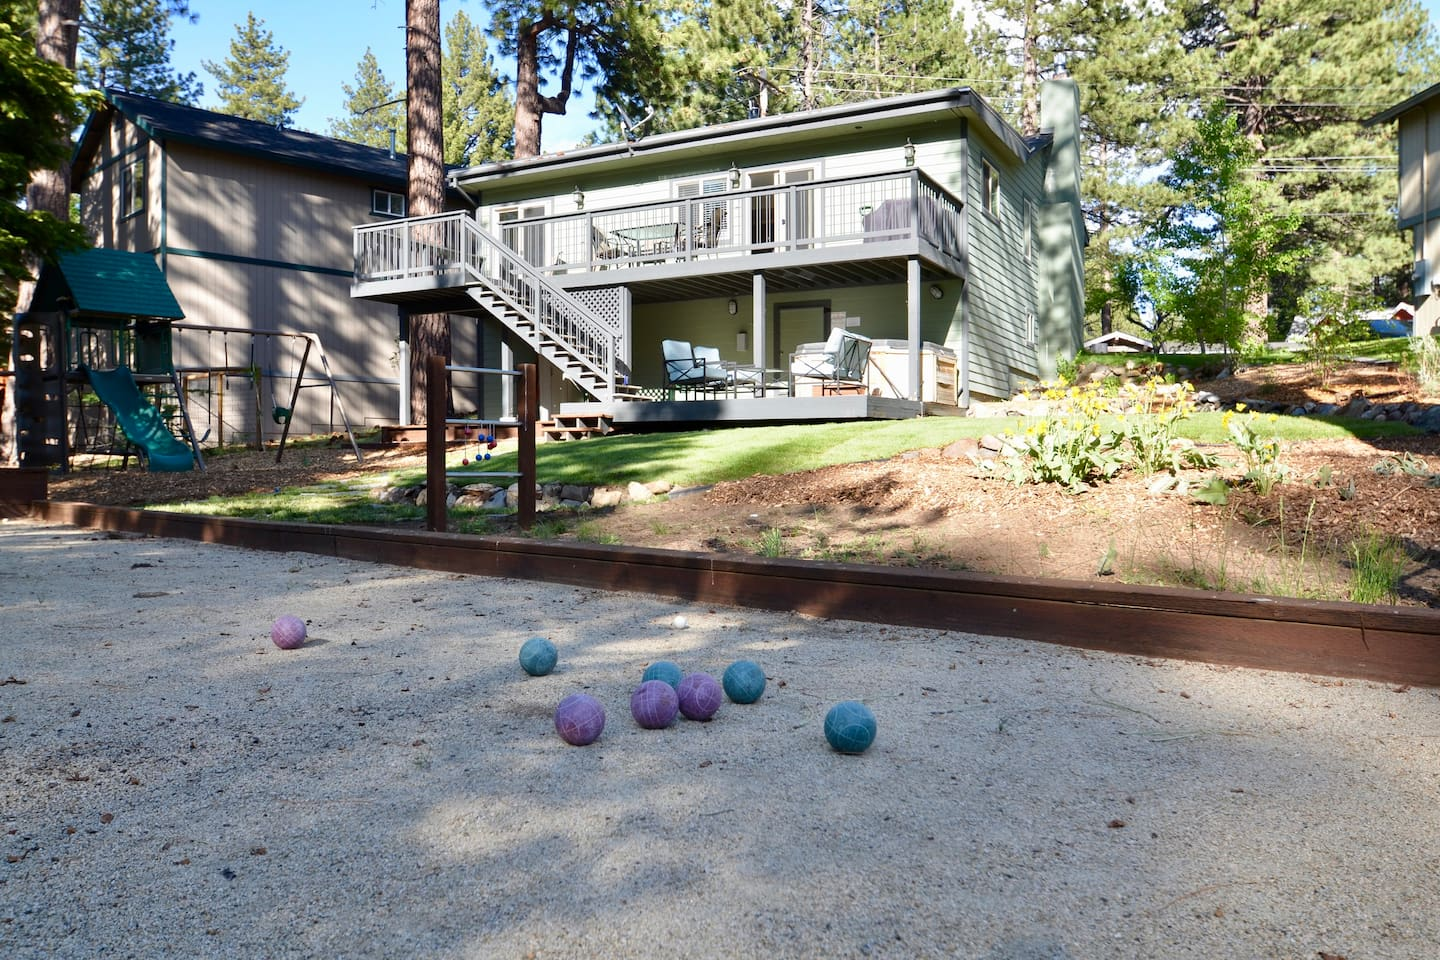 Enjoy a relaxing beverage while the kids entertain themselves on the swings, bocce ball or ladder ball.